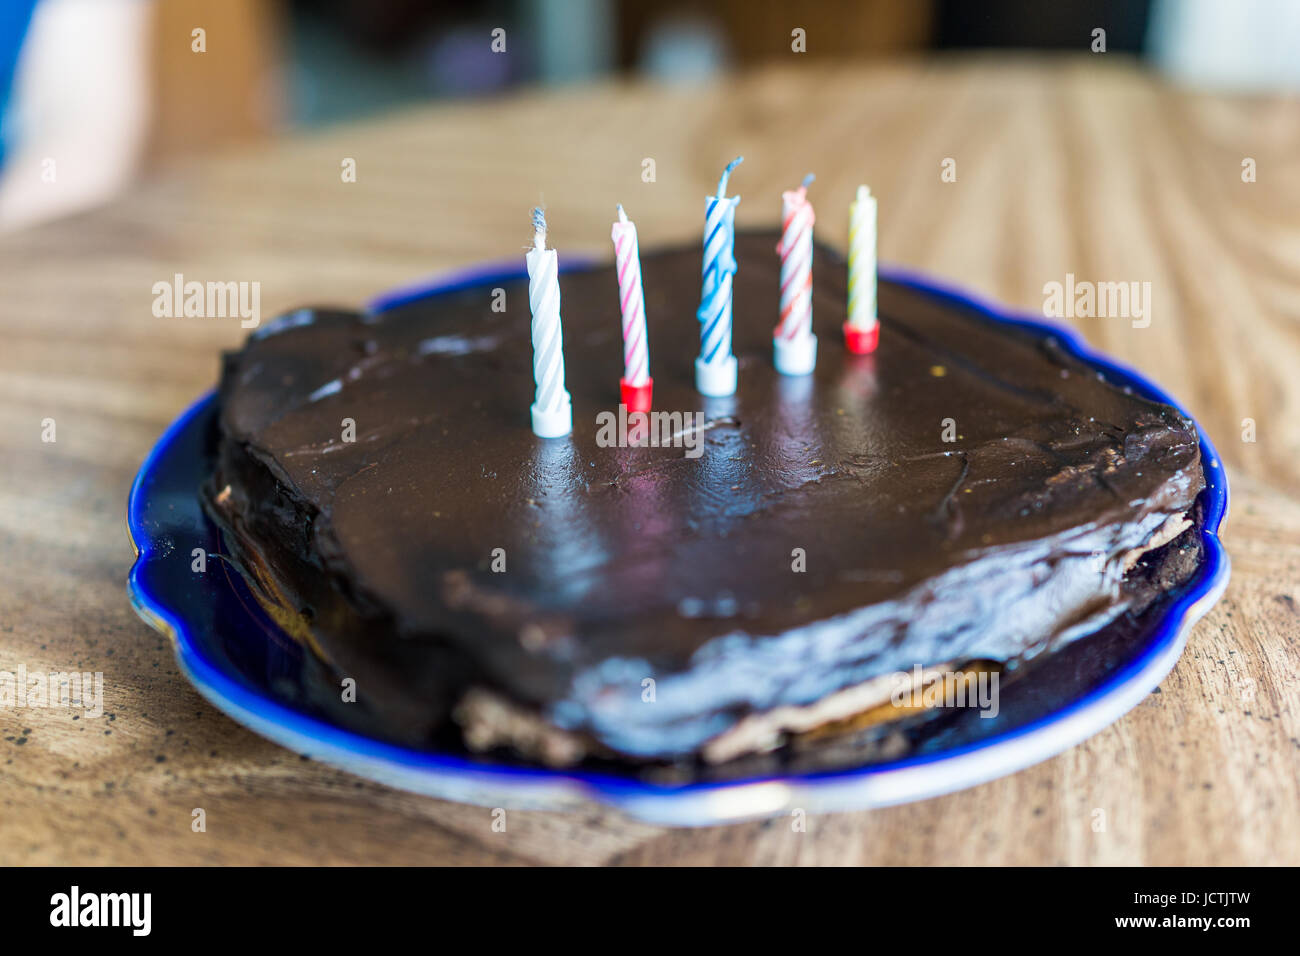 Awesome Simple Square Small Chocolate Birthday Cake With Five Colorful Funny Birthday Cards Online Fluifree Goldxyz